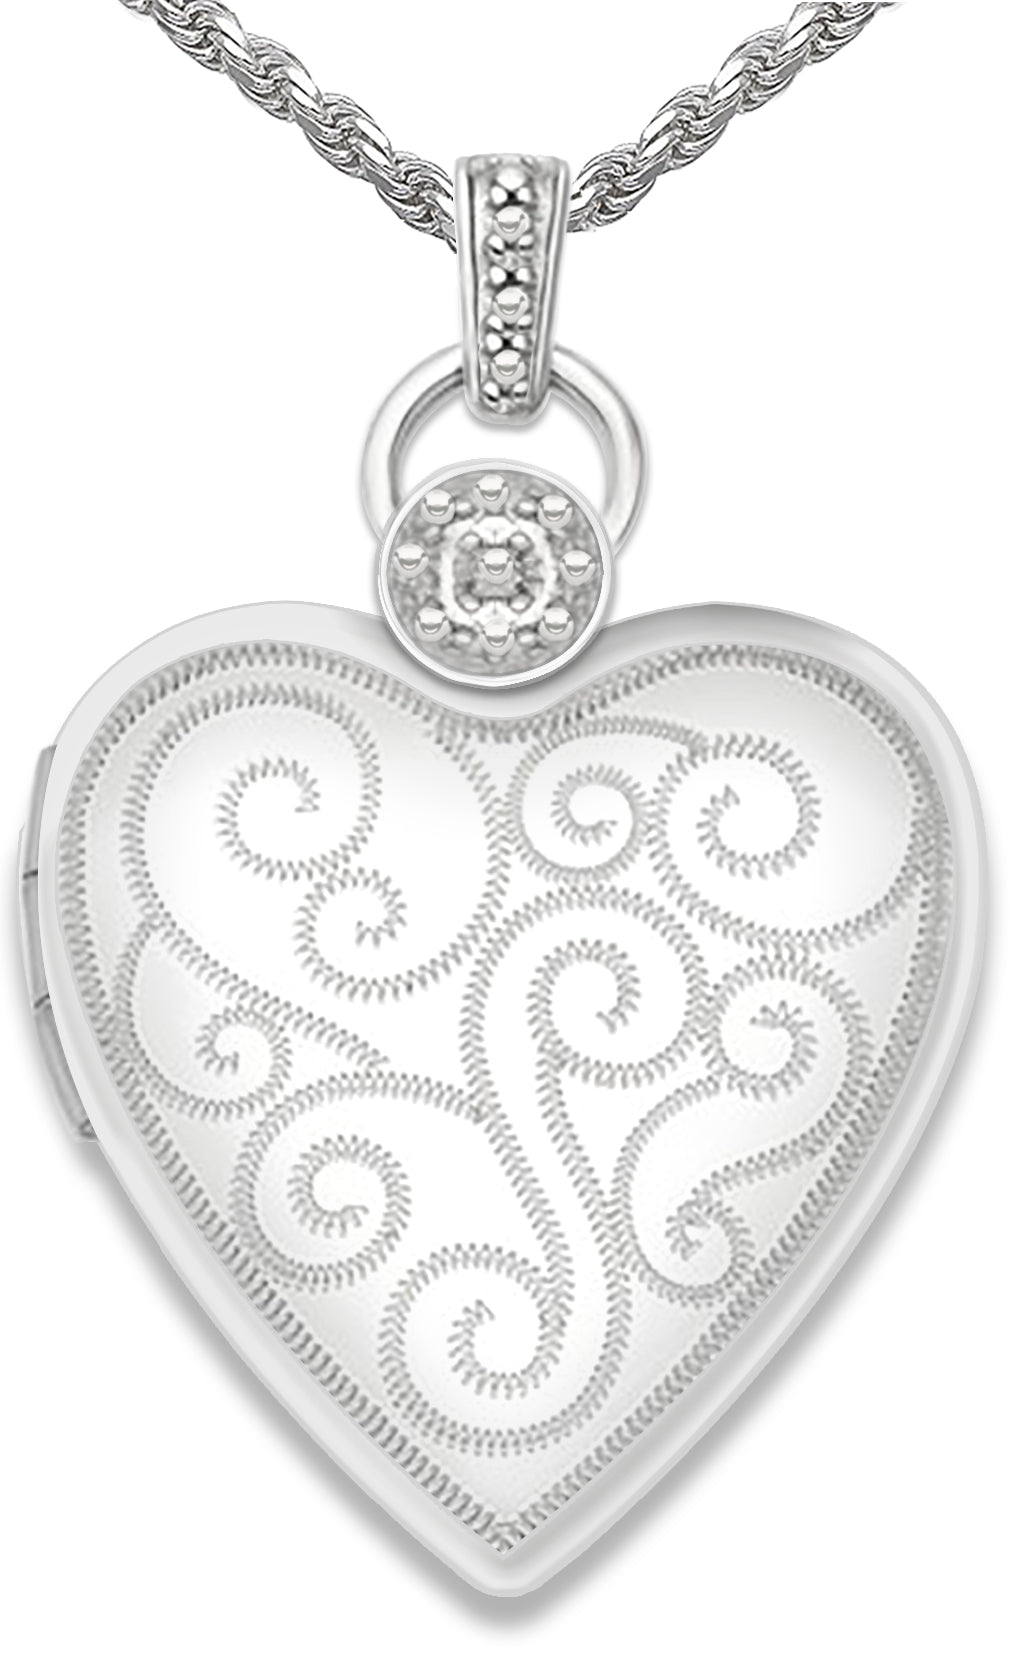 Heart Locket - Diamond Necklace Of Silver With 2 Photos